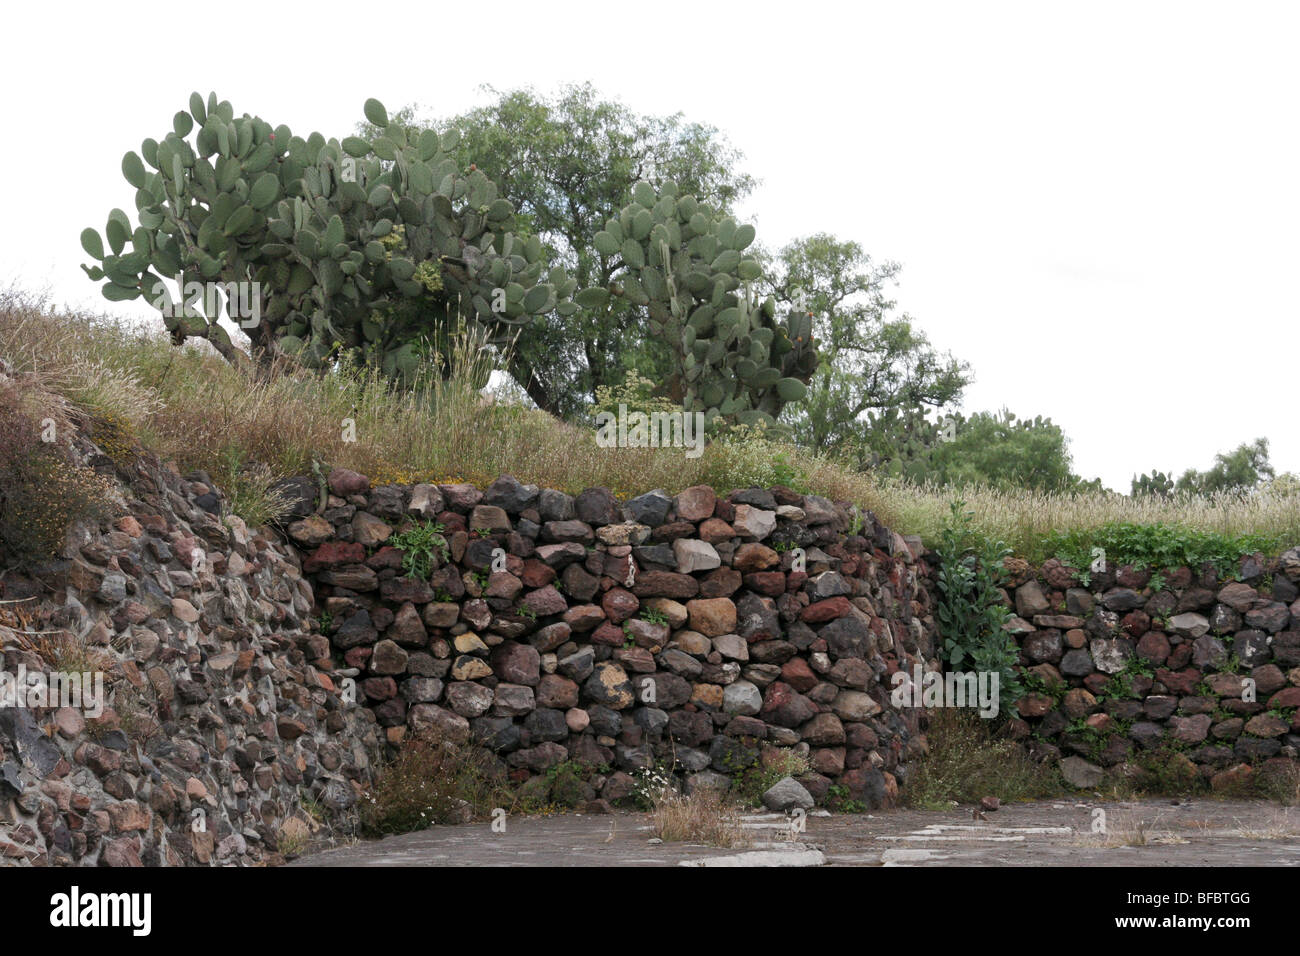 Ancient walls in Teotihuacan, Mexico. - Stock Image